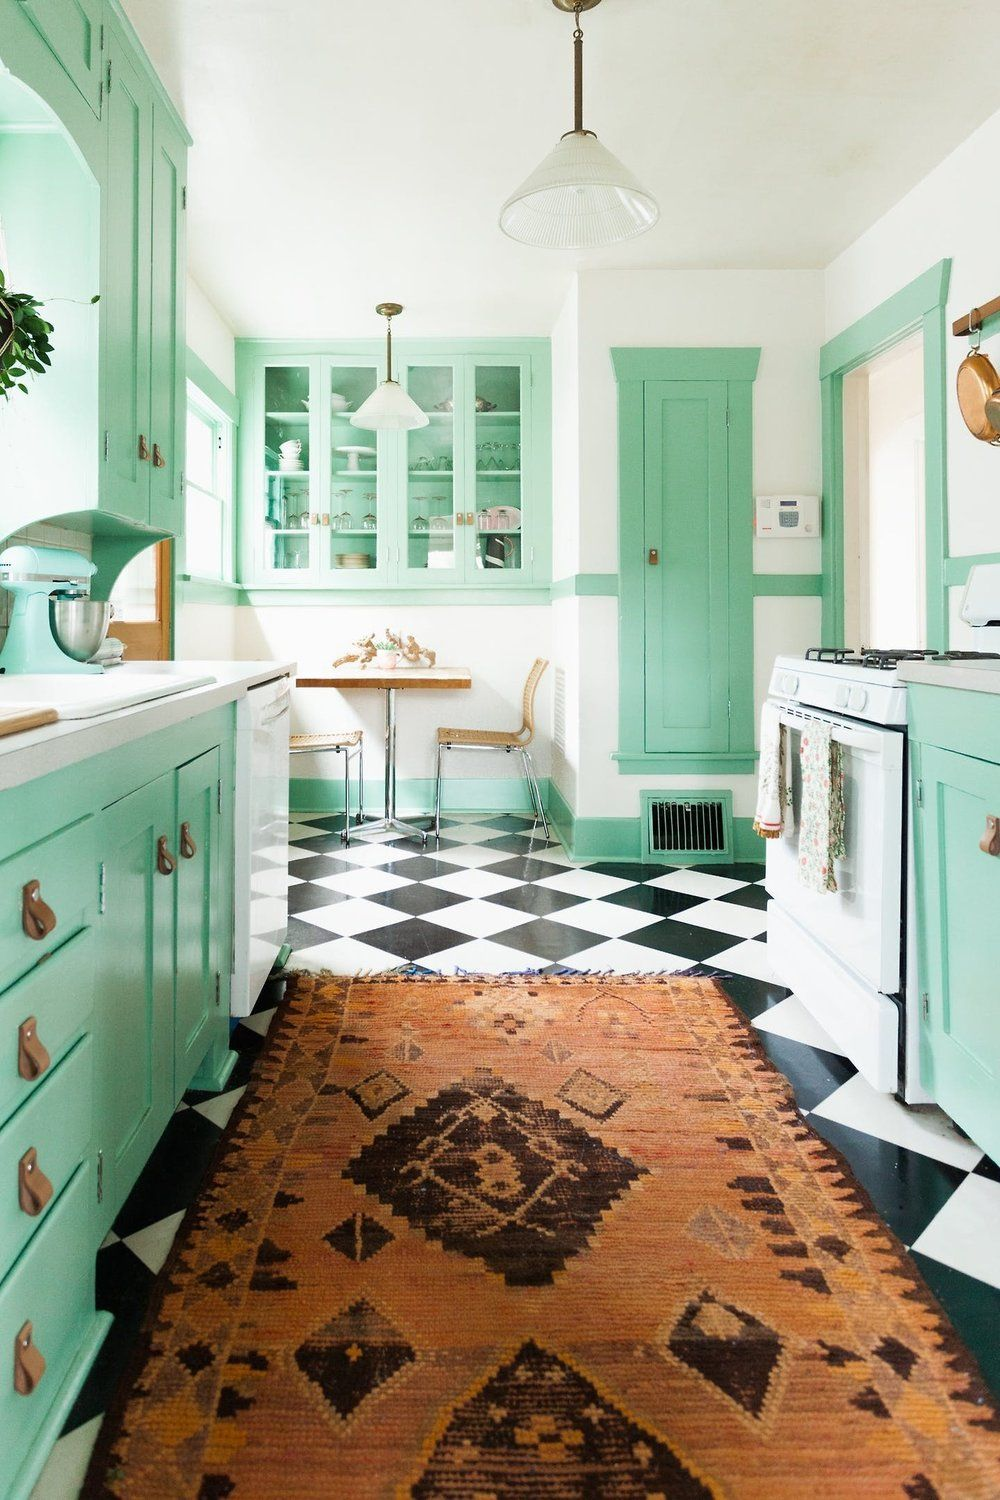 14 Colourful Kitchens That Make A Bold Statement The Nordroom Kitchen Trends 2019 Kitchen Trends Eclectic Kitchen